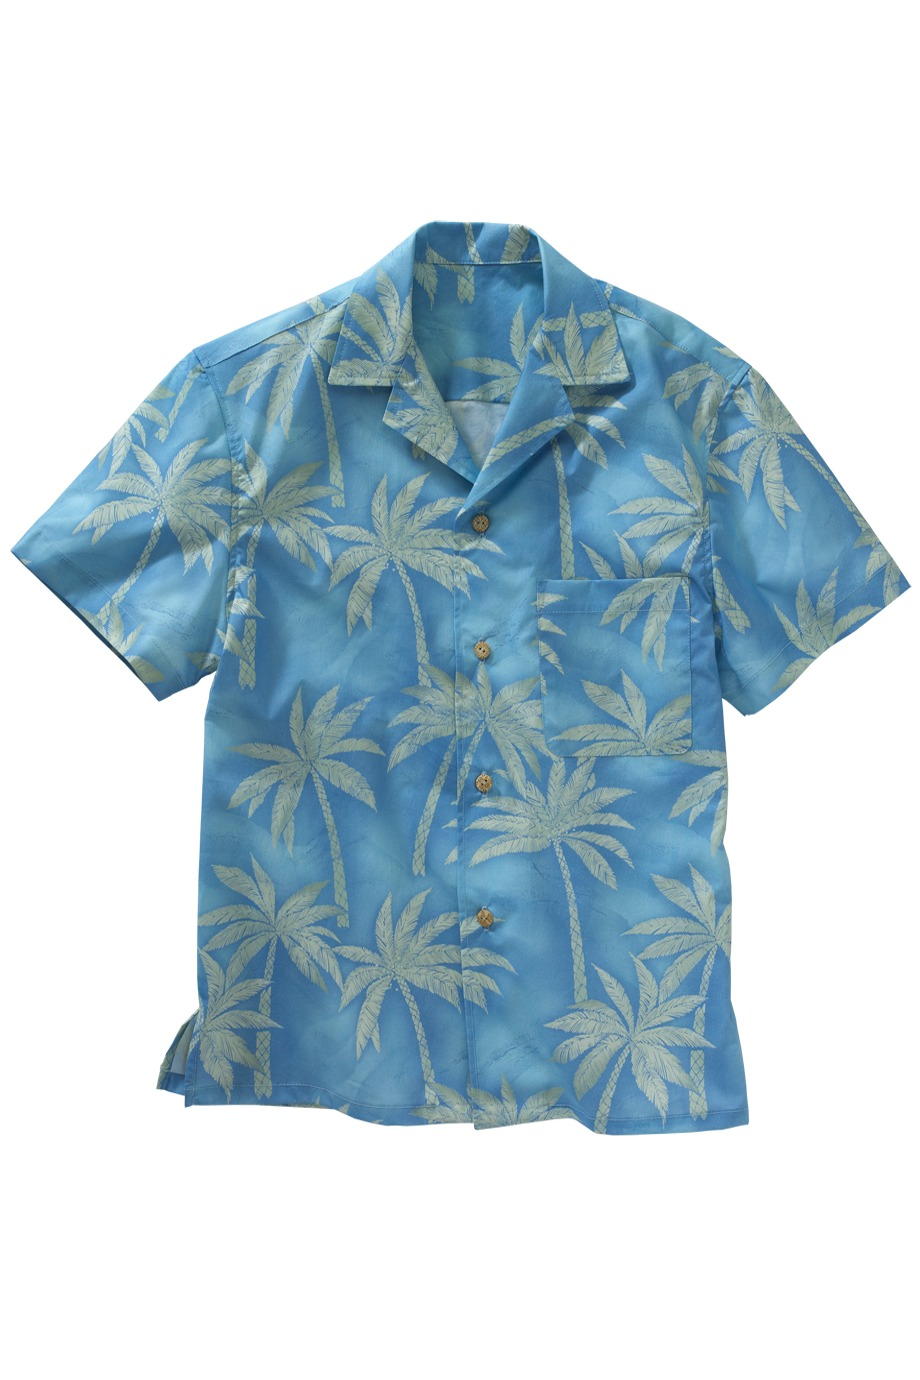 Edwards Garment 1034 - Palm Tree Camp Shirt